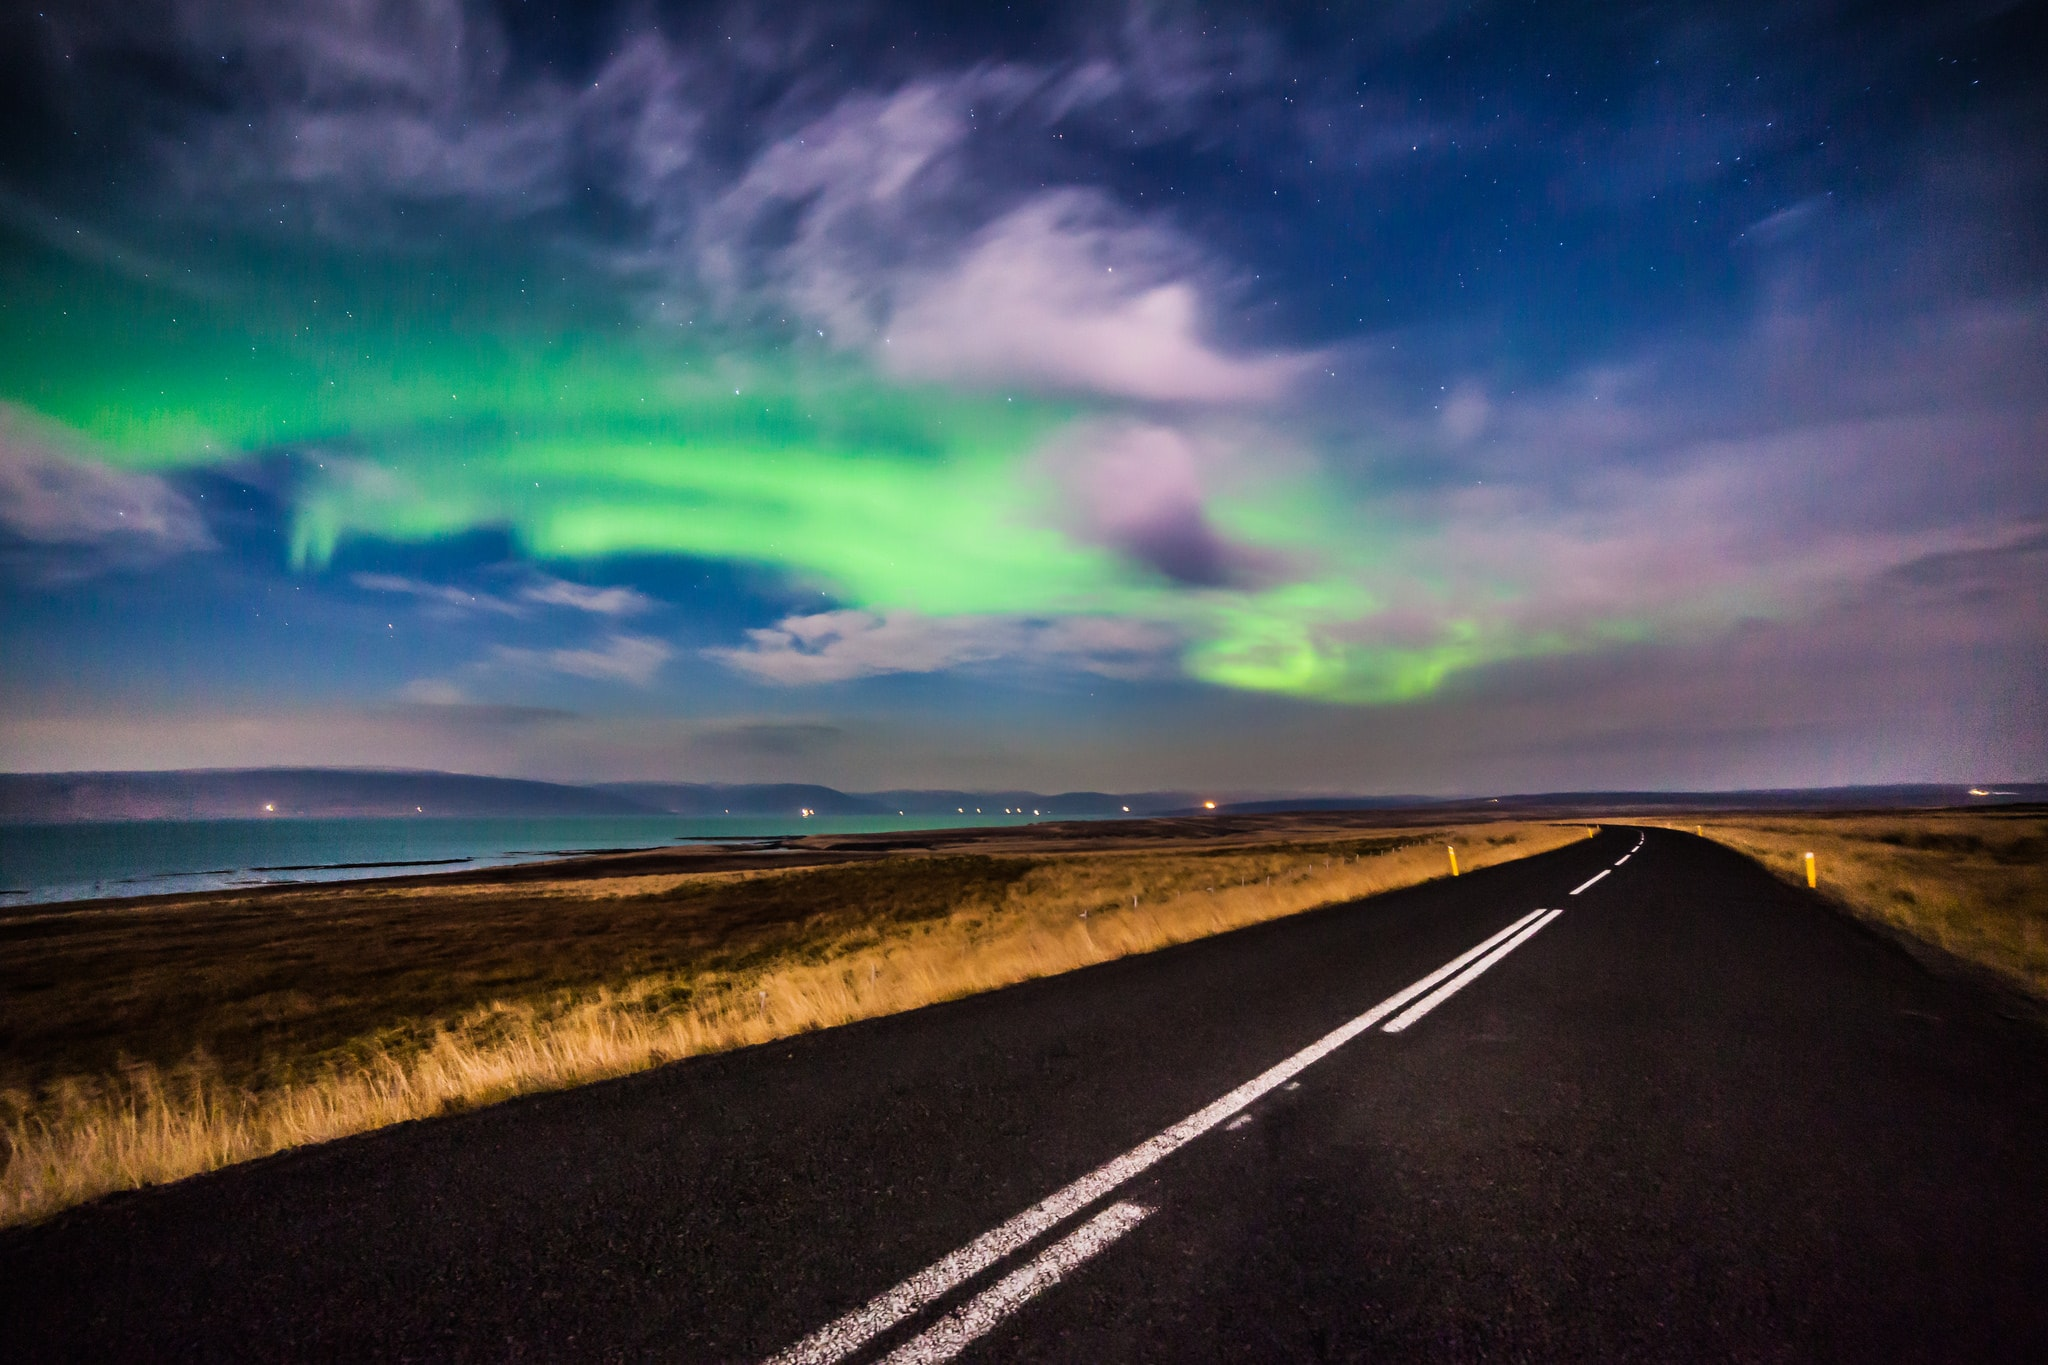 Best Chance See Northern Lights